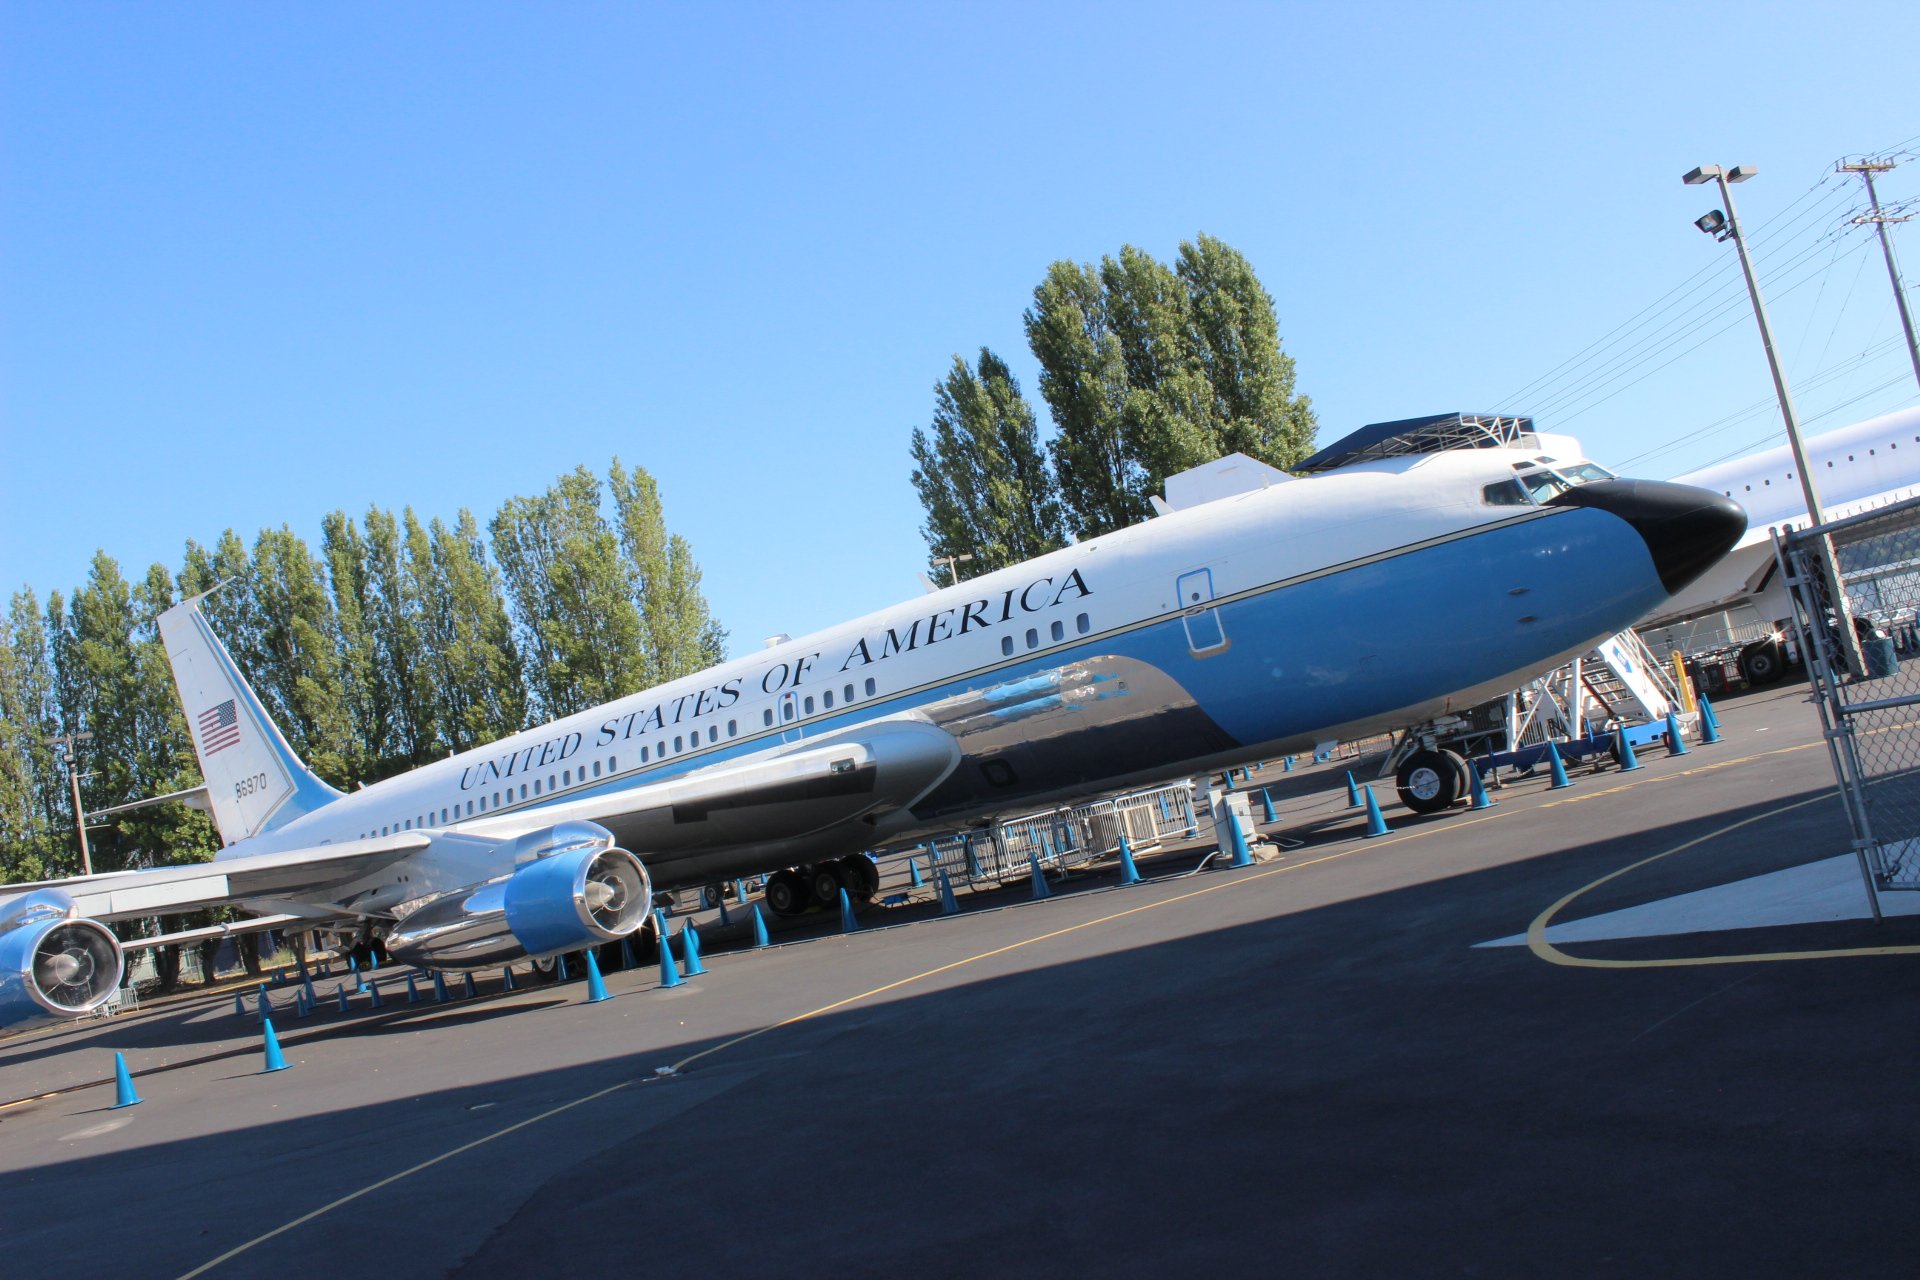 Air Force one: SAM970 Monday morning before we got to work